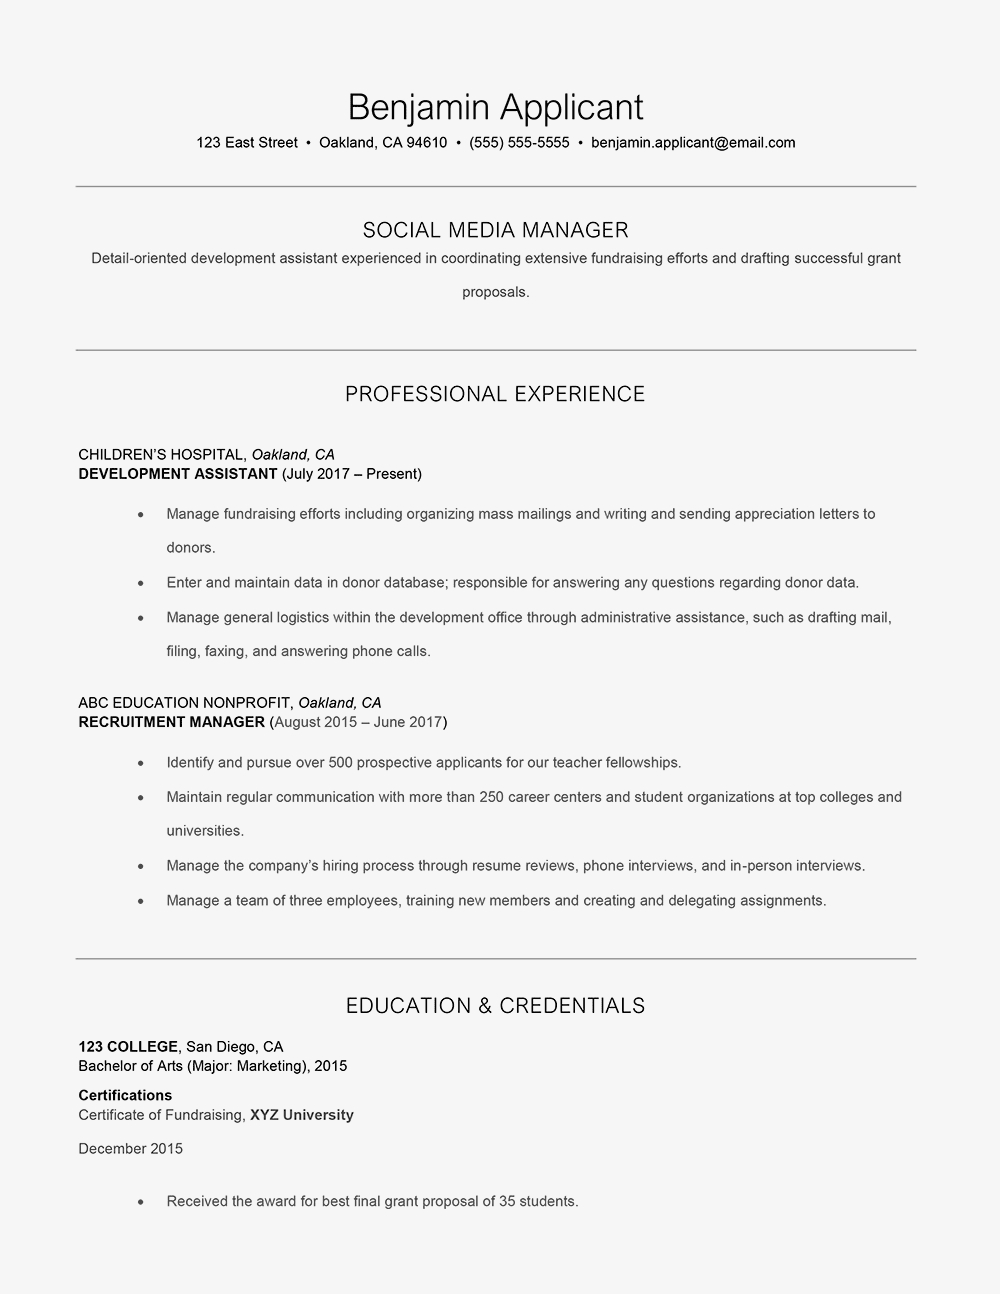 Entry Level Clinical Research Coordinator Resume - How to Add A Branding Statement to Your Resume